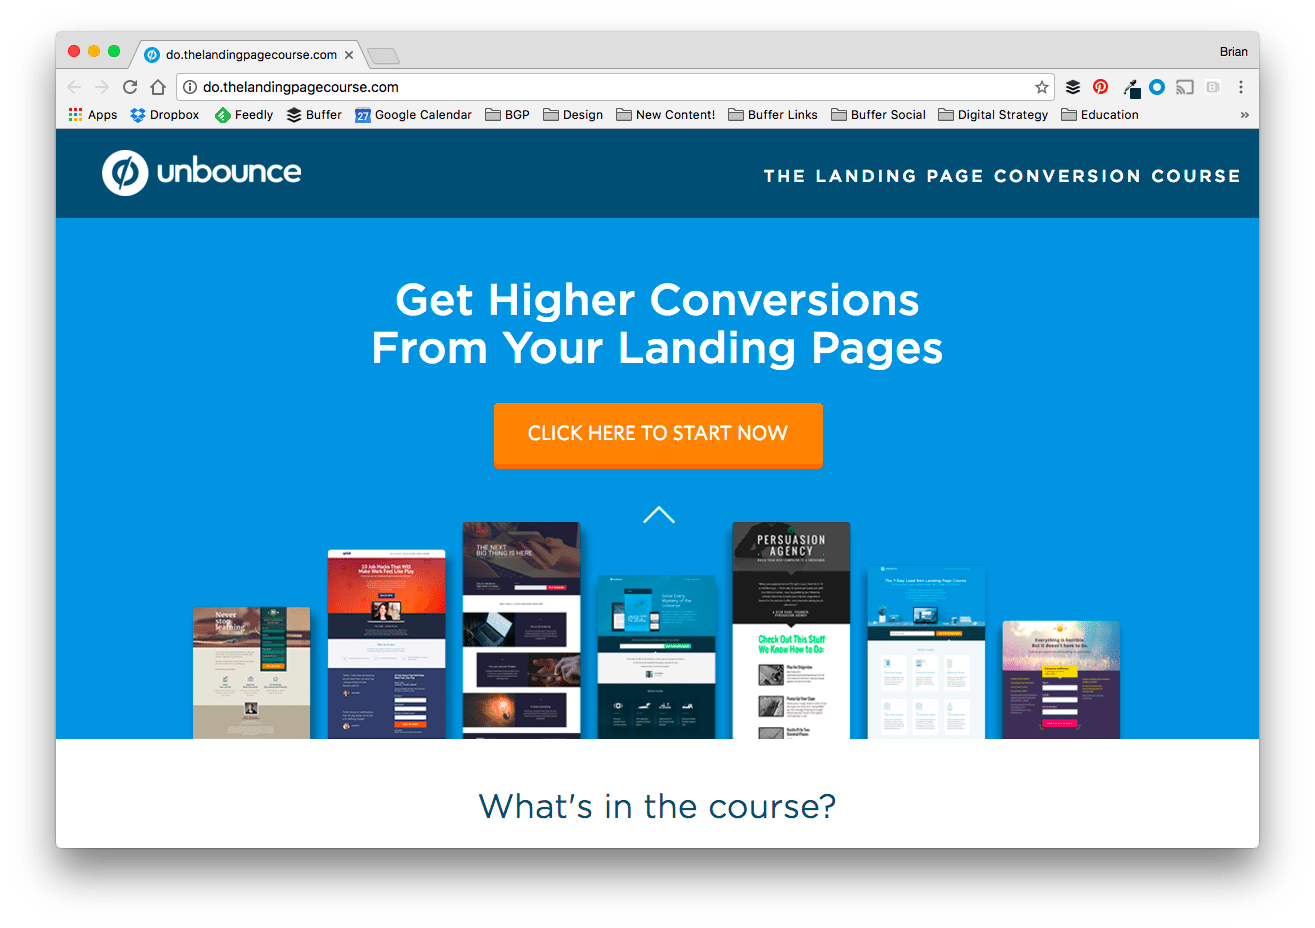 THE LANDING PAGE CONVERSION COURSE